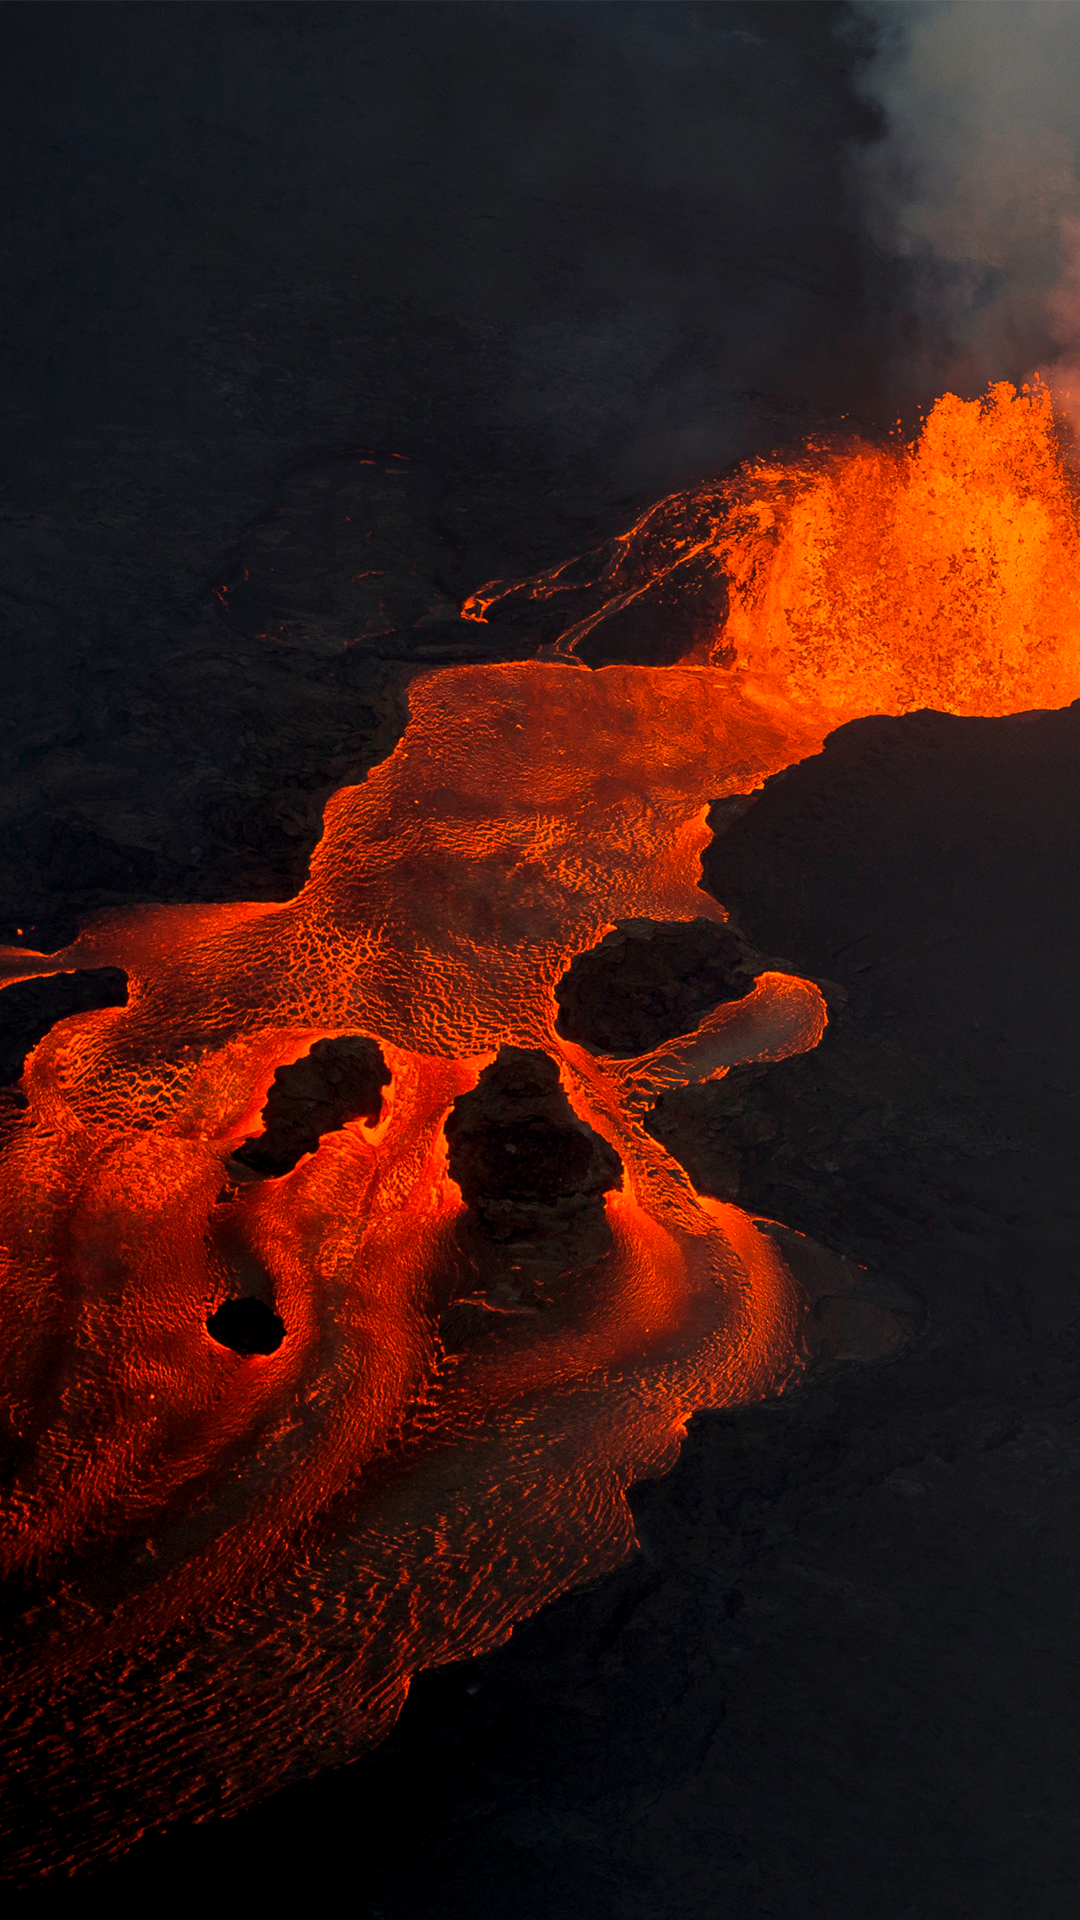 A Year After Hawaii S Largest And Most Destructive Volcano Eruption In Decades Thousands Of Residents Are Struggling To In 2020 Volcano Photos Volcano Hawaii Volcano